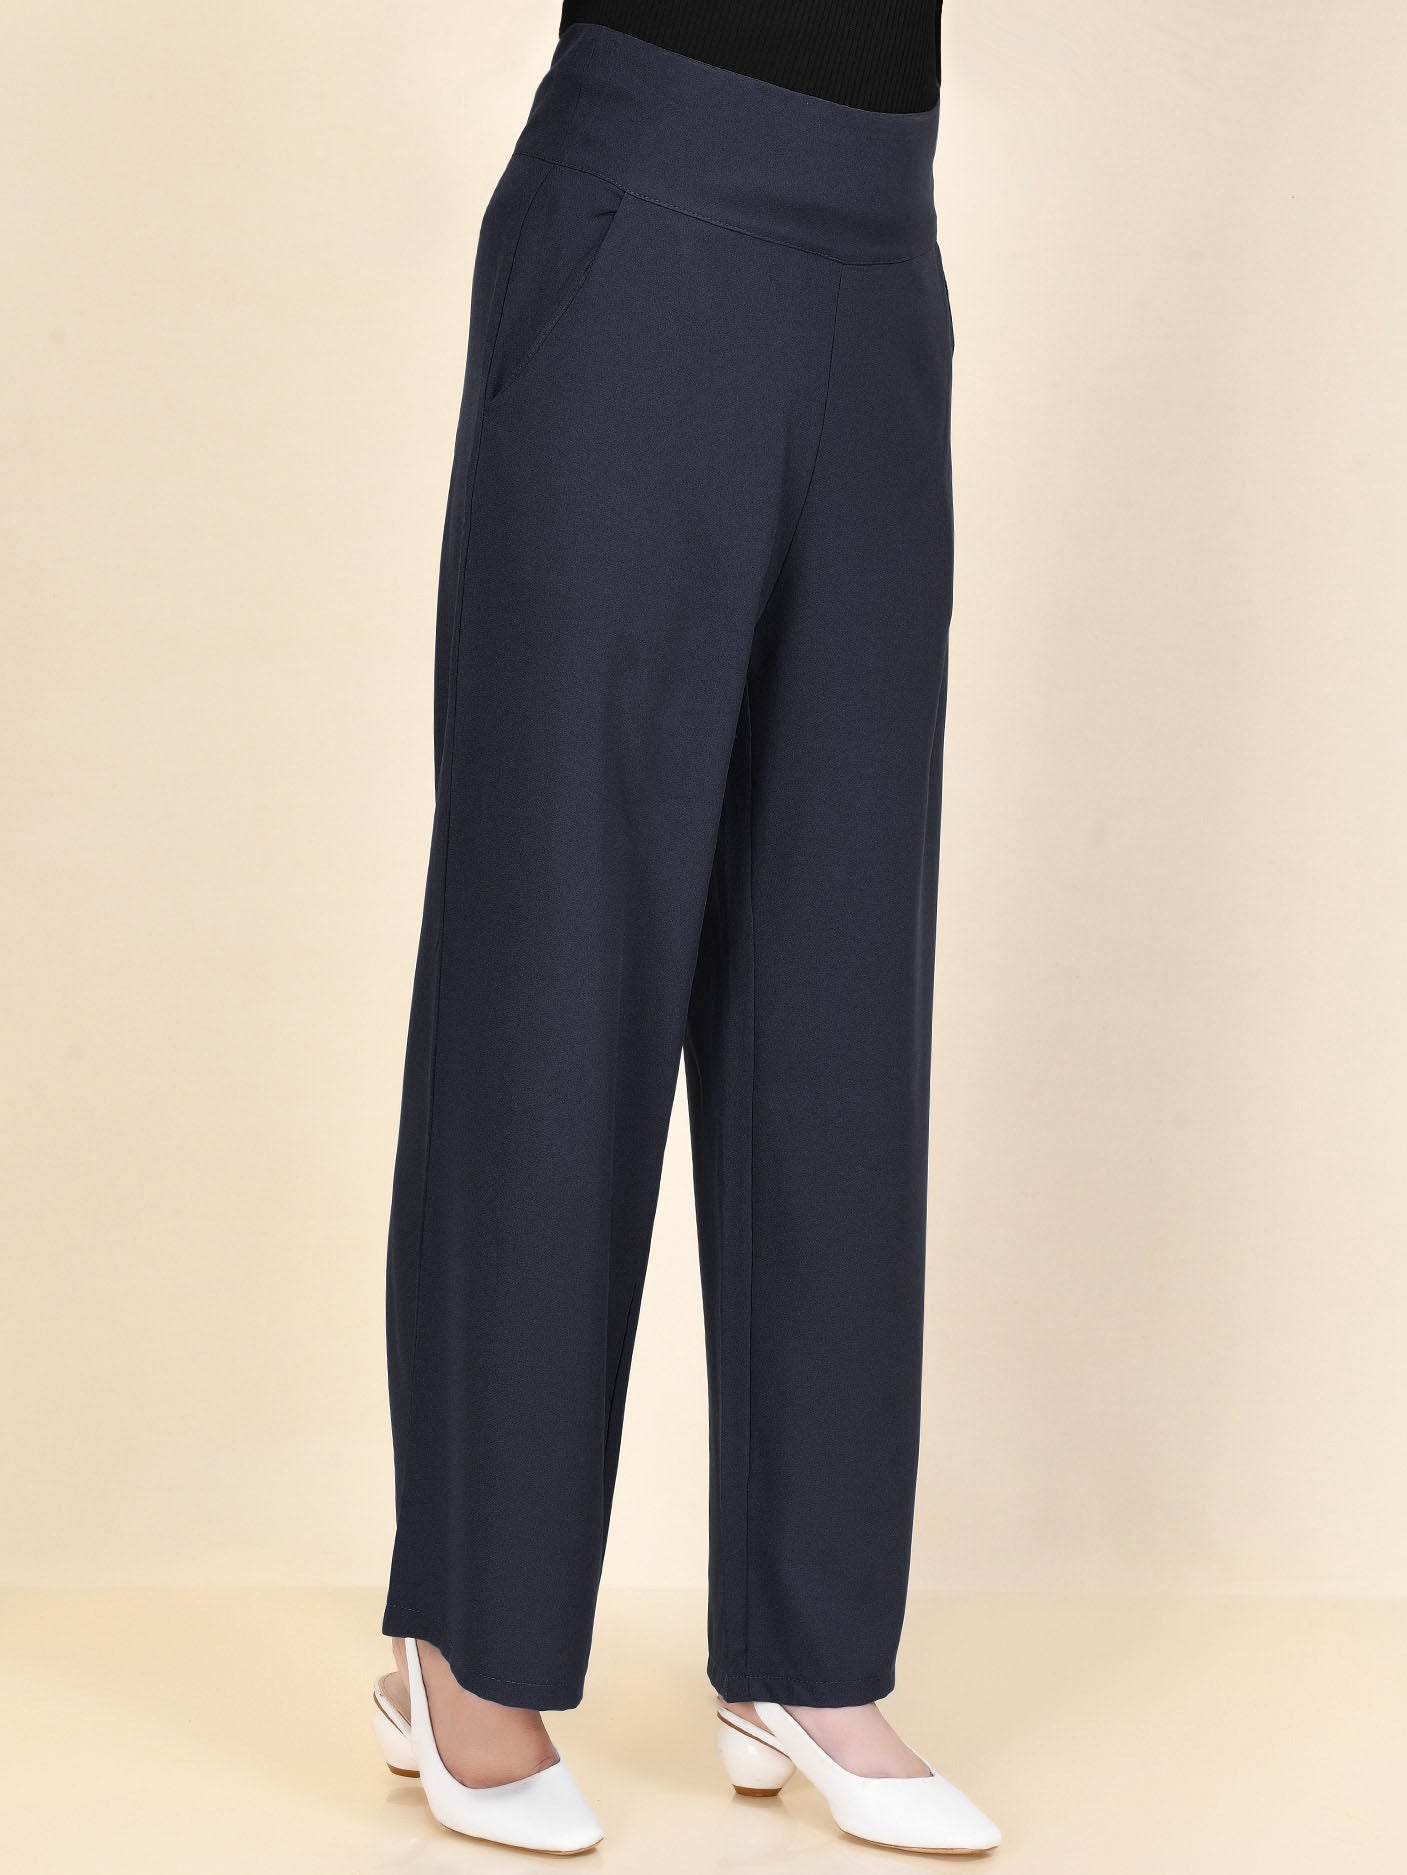 Wide Grip Pants - Dark Blue